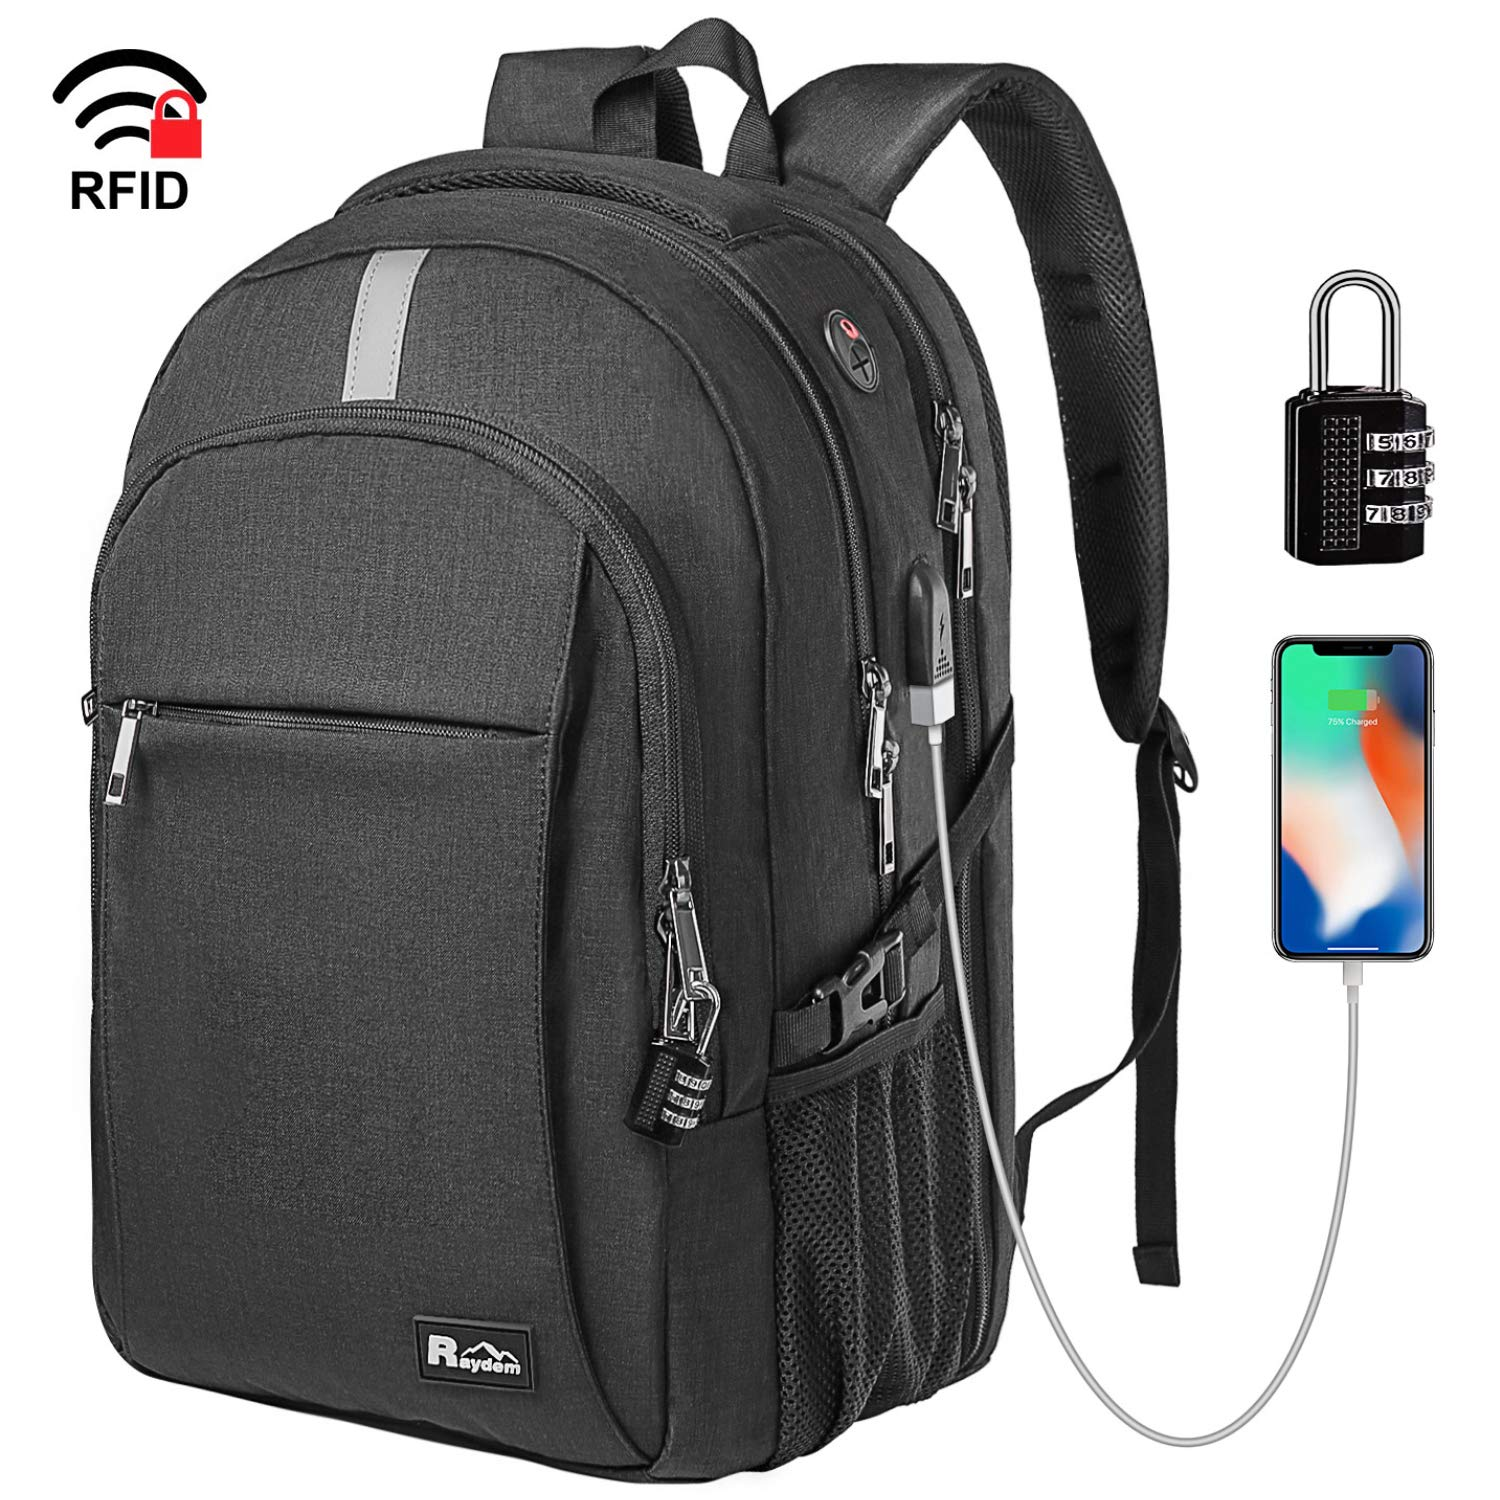 Raydem Business Laptop Backpack, Extra Large TSA Friendly Durable Anti-Theft Travel Backpack with USB Charging Port, Water Resistant College School Computer Bag for Women & Men Fits 15.6'' Laptop by Raydem